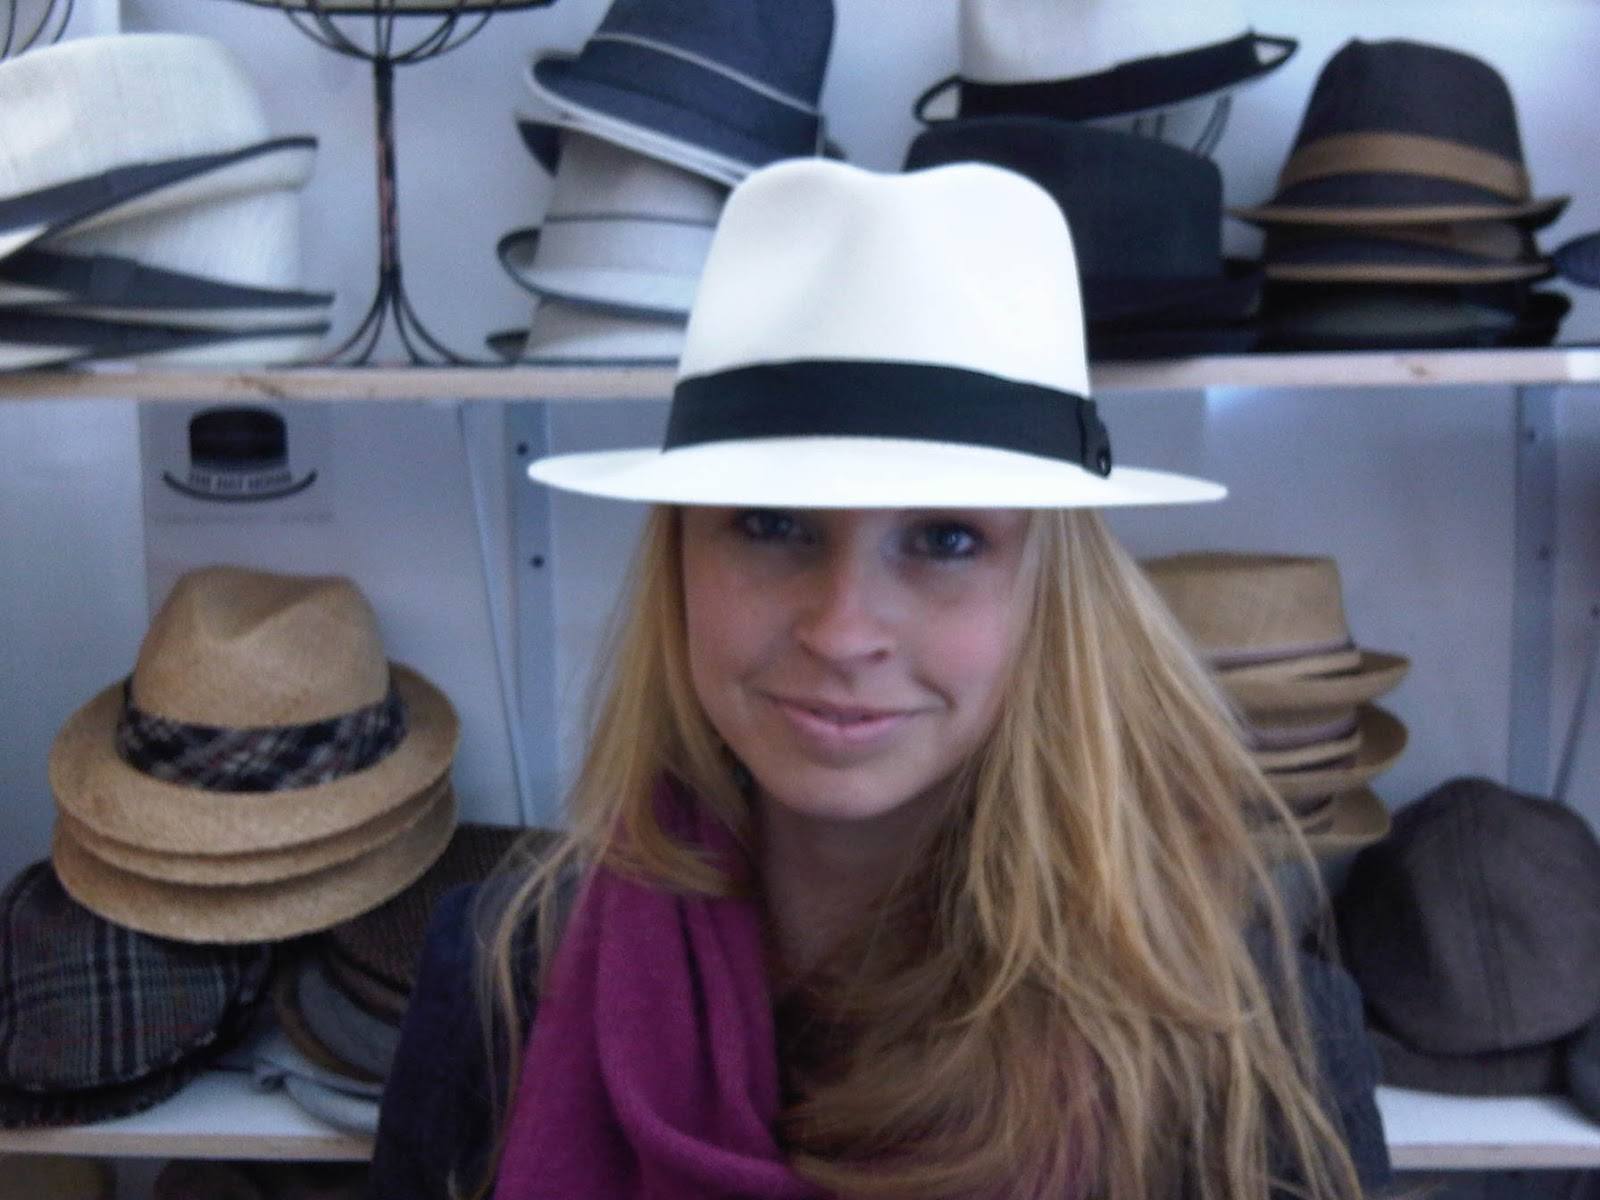 Buy Panama Hats in New York